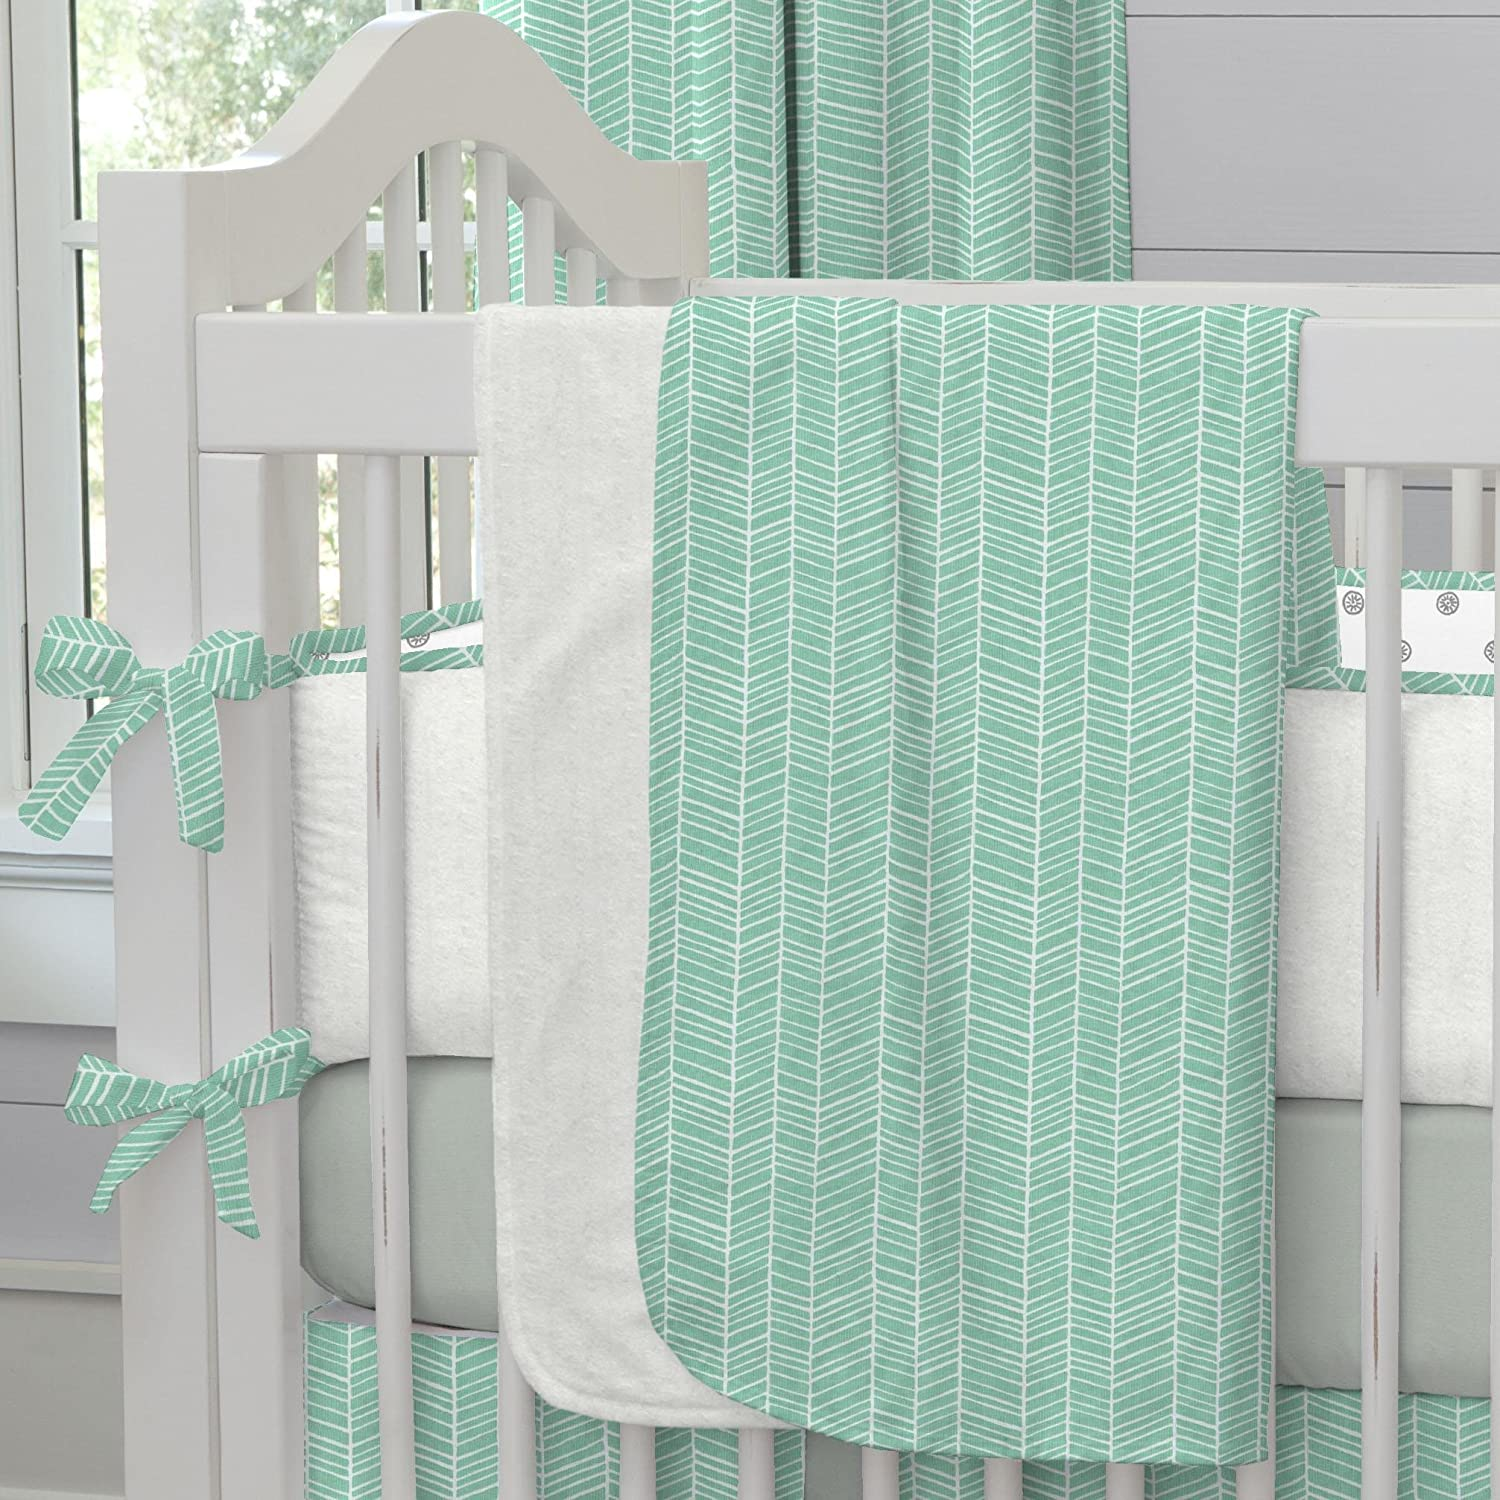 Carousel Designs Mint Herringbone Crib Blanket by Carousel Designs   B00P8DV5BW